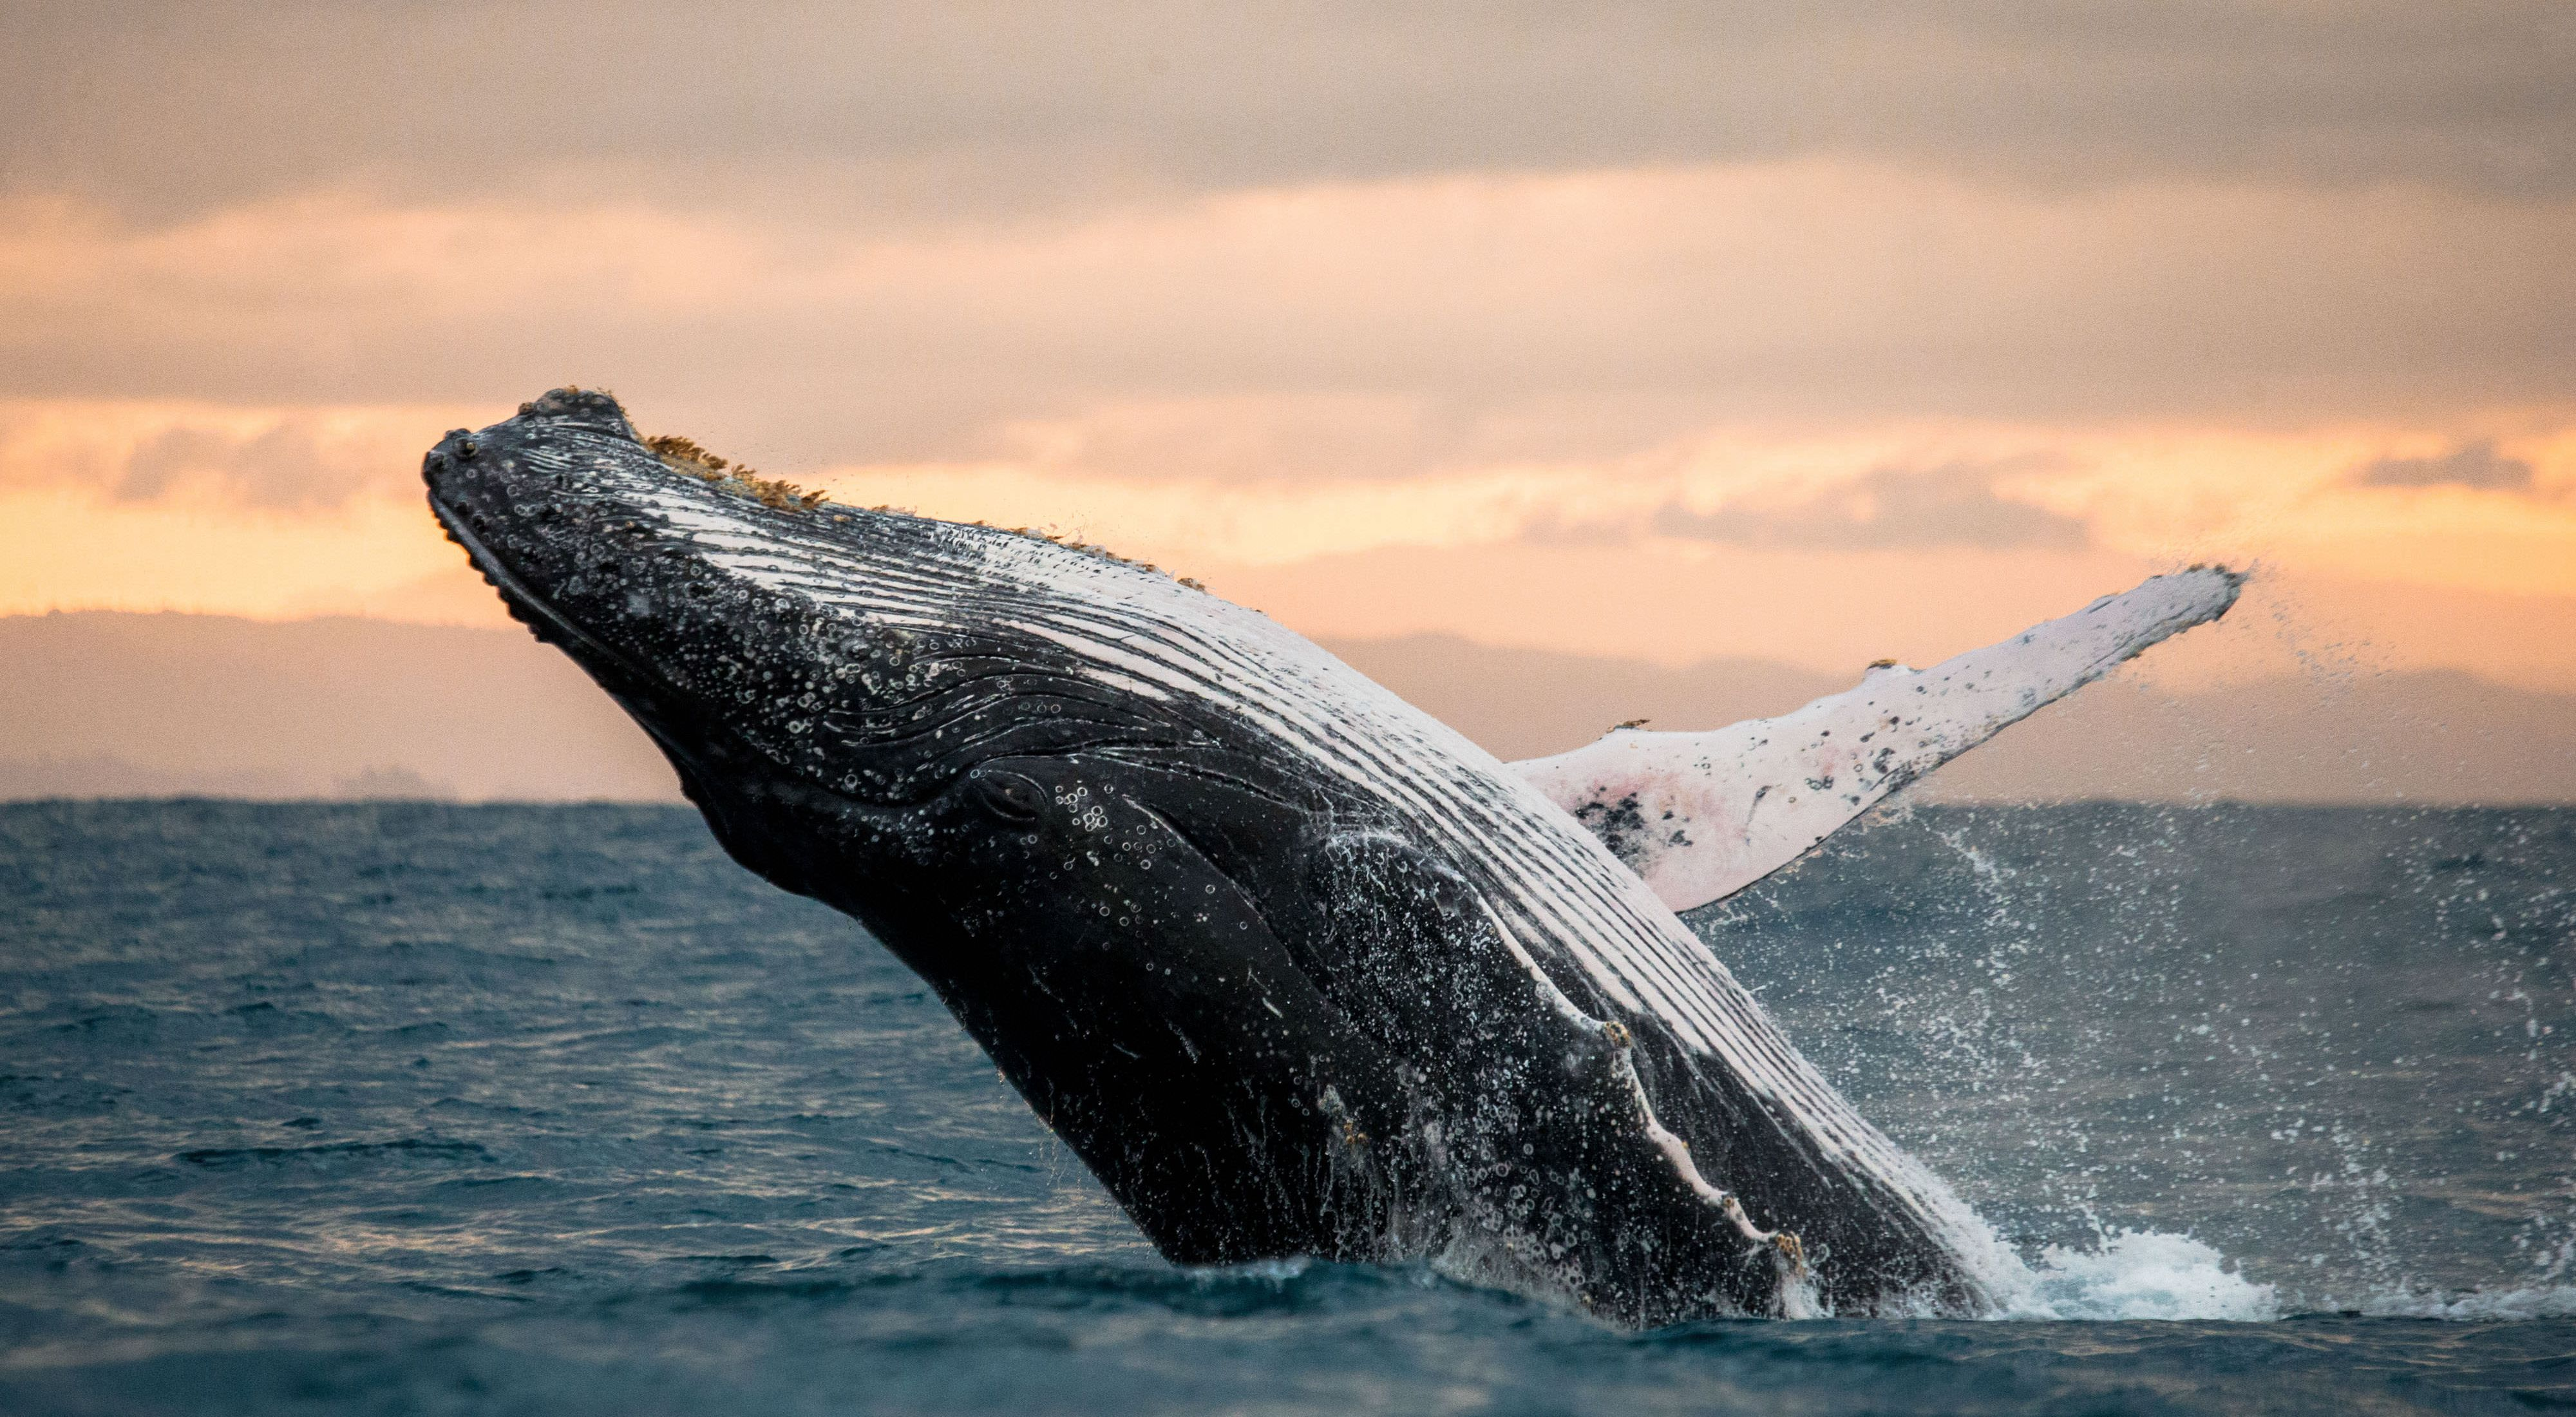 A humpback whale breaching off the California coast.